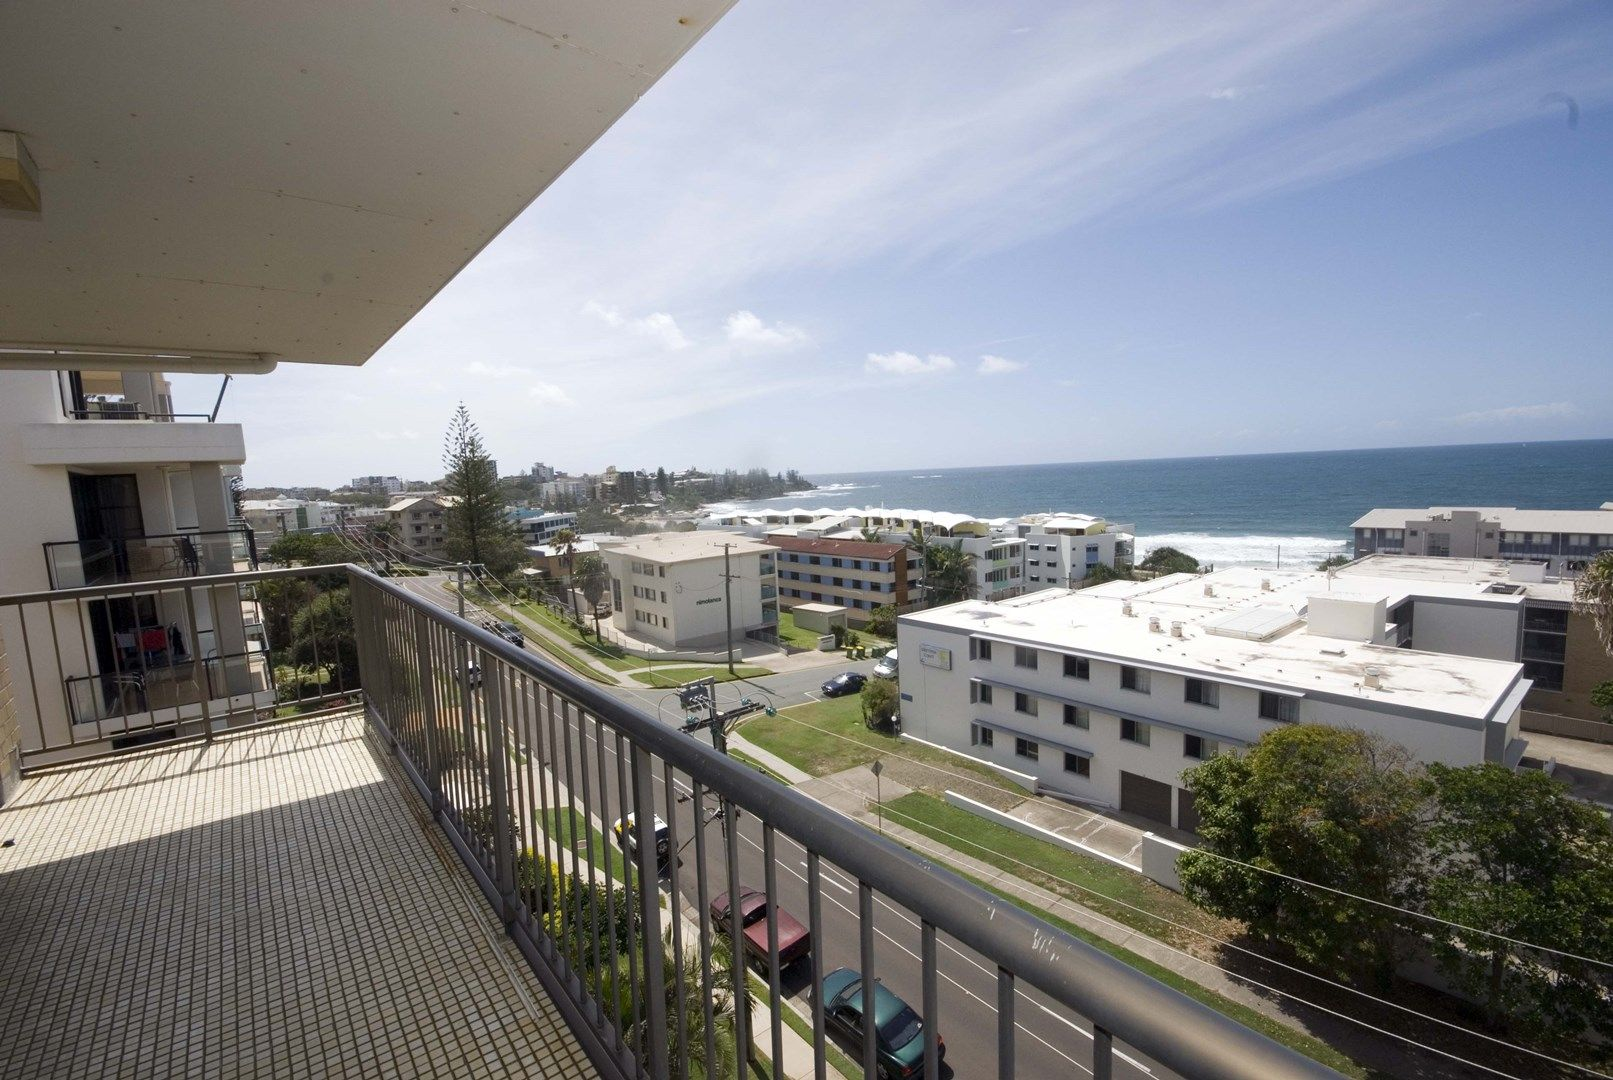 14/14 Warne Terrace, Kings Beach QLD 4551, Image 0